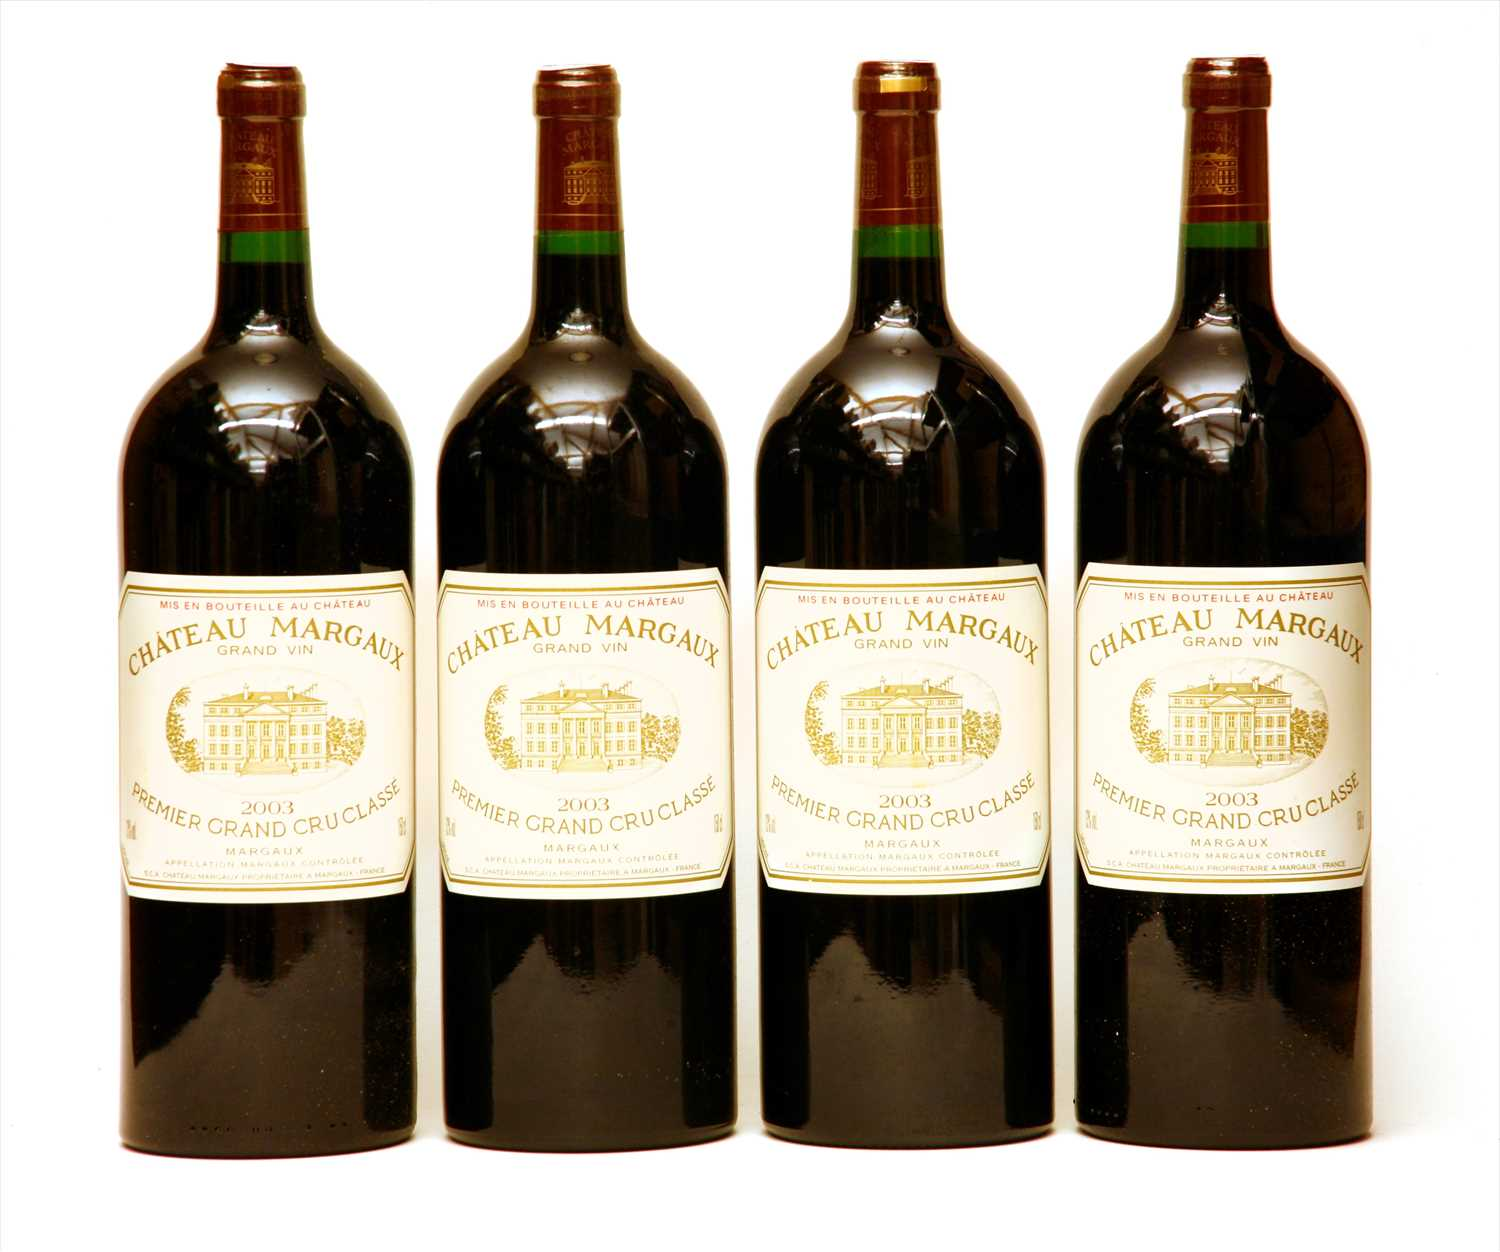 345 - Château Margaux, Margaux, 1st growth, 2003, four magnums (in opened owc)